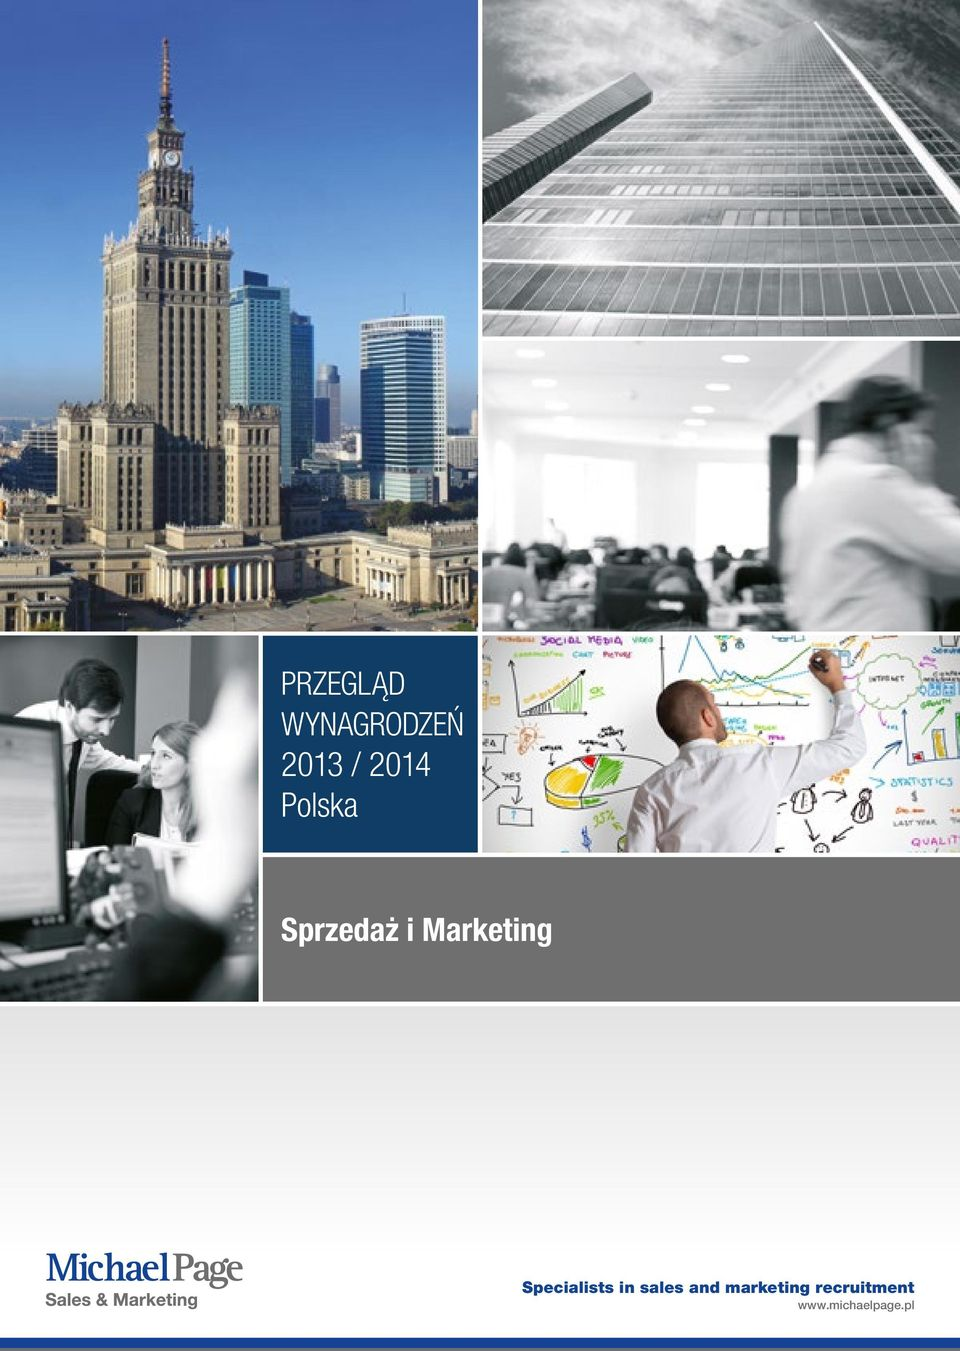 Marketing Specialists in sales